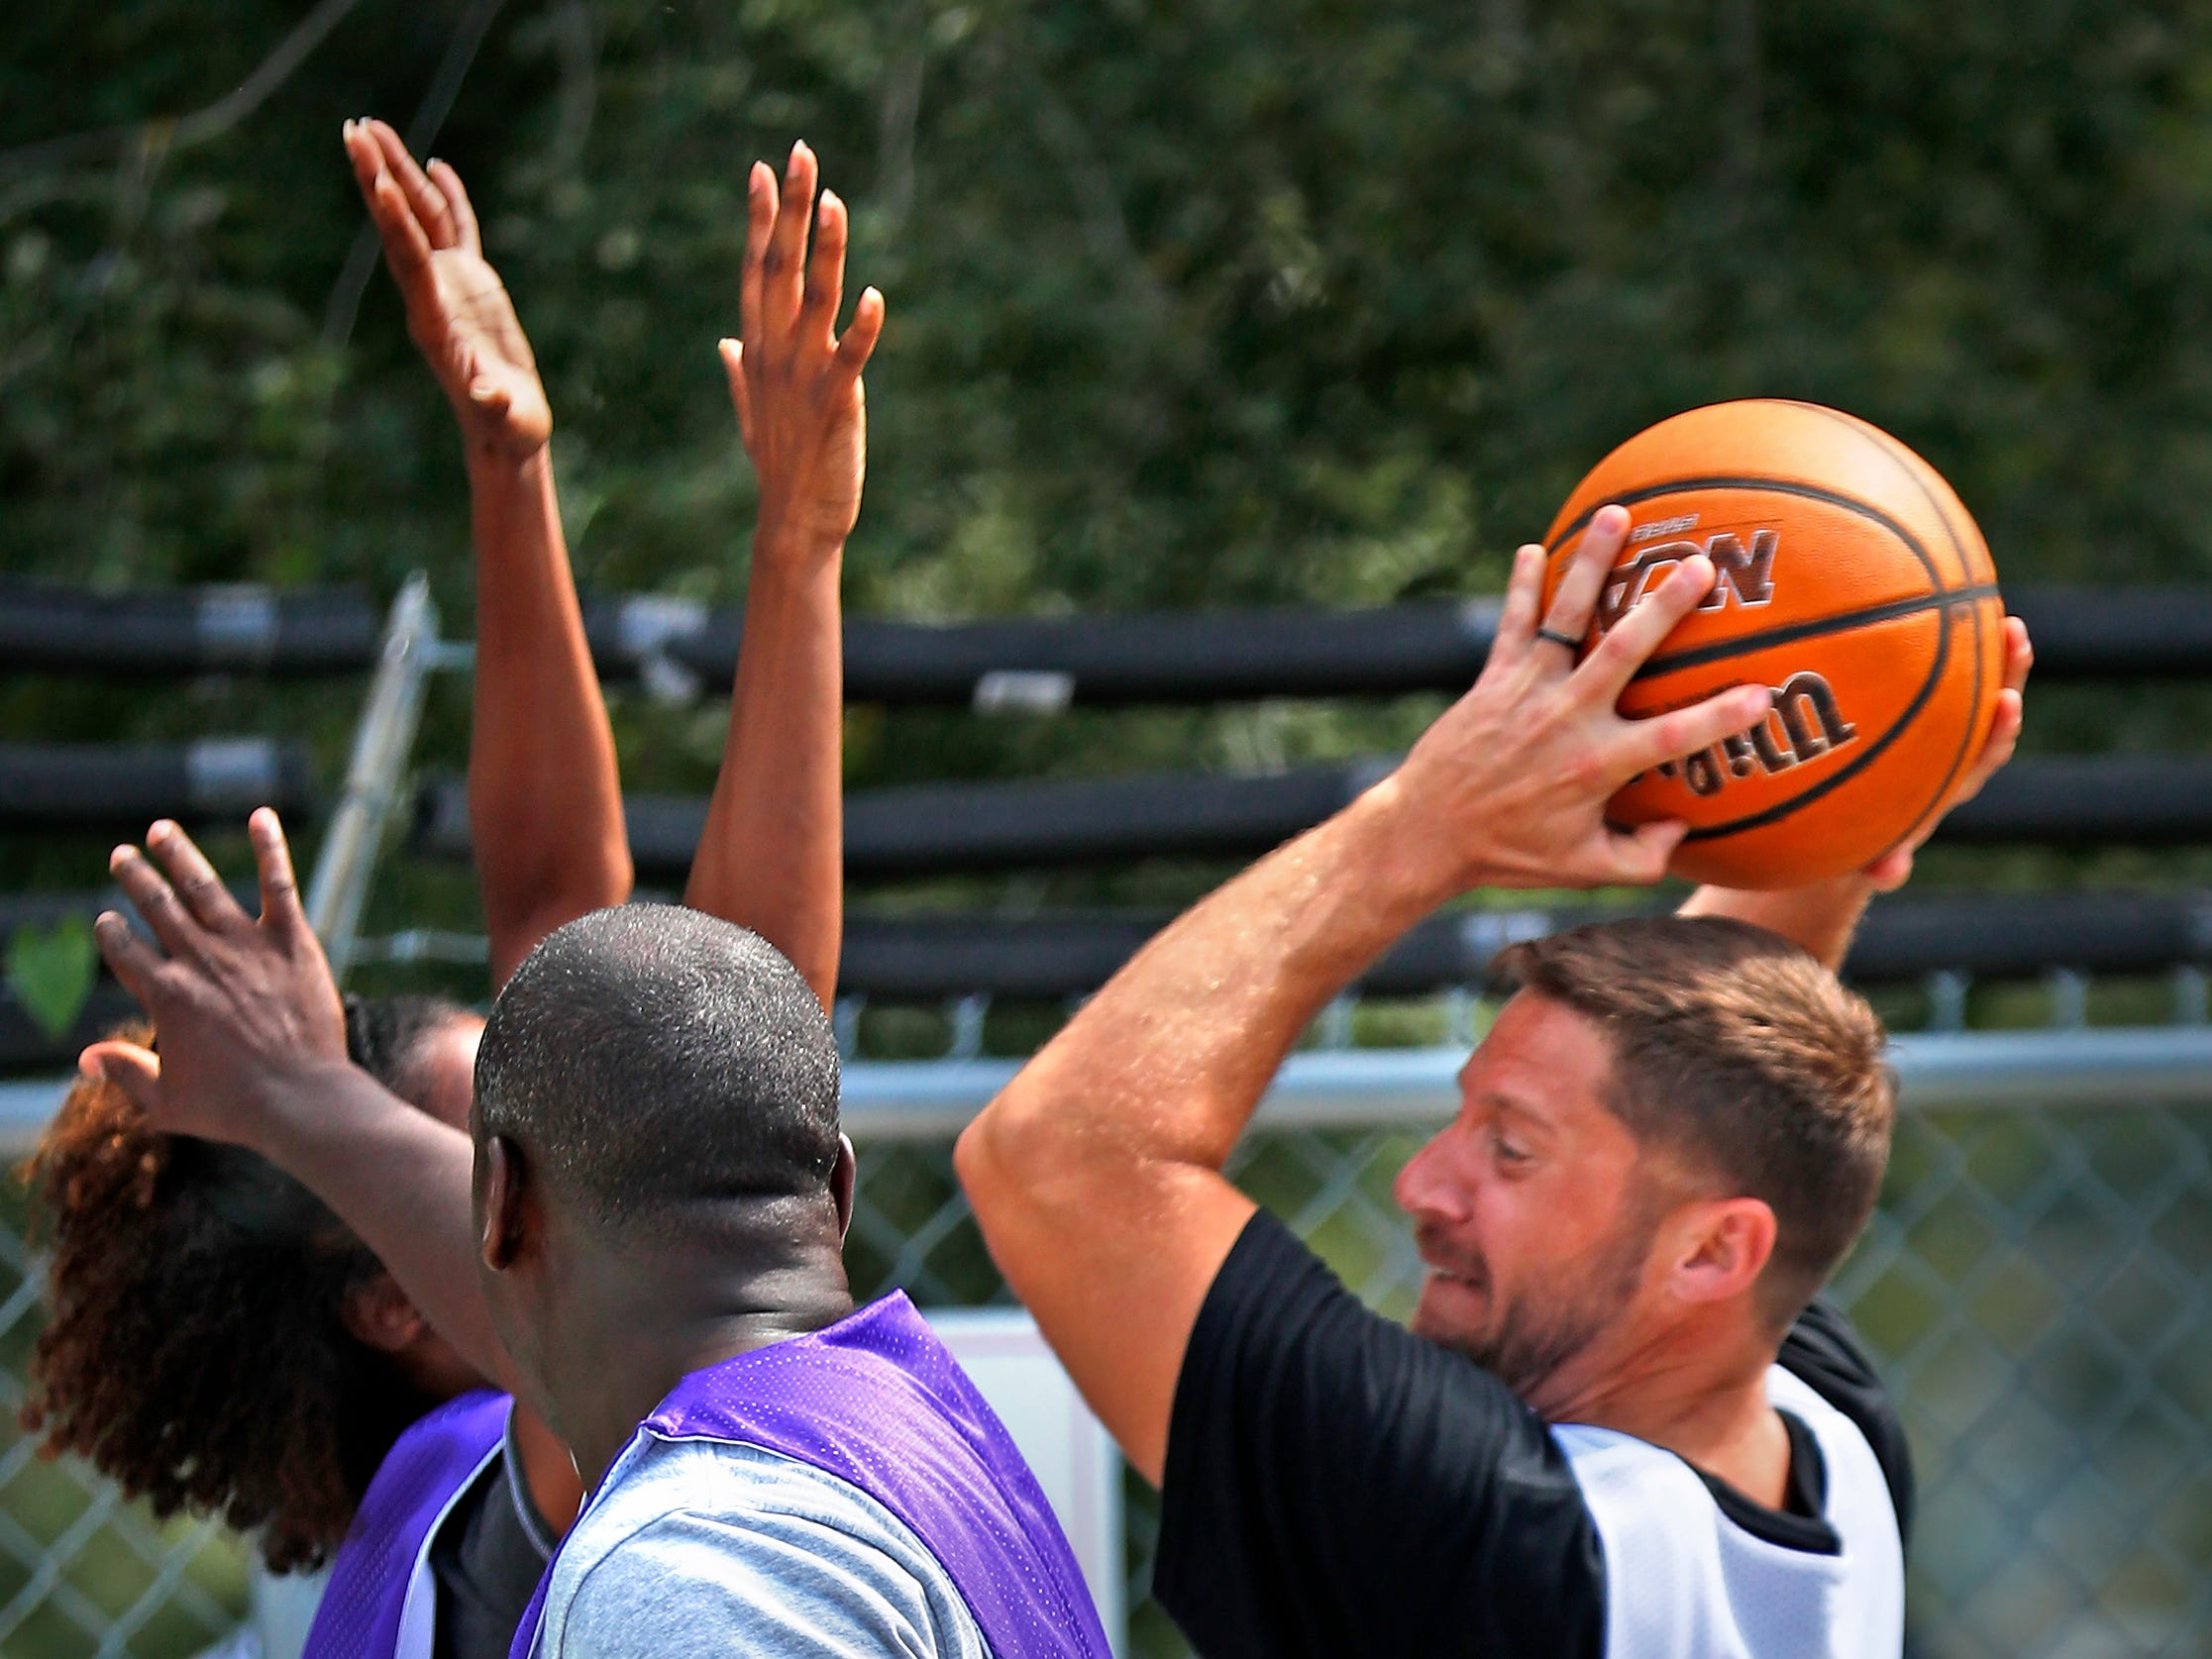 Bryan Bush, right, with Goodwill, shoots over his opposition, during a basketball game at Goodwill Commercial Services, Wednesday, Sept. 19, 2018.  Goodwill Industries of Central Indiana's New Beginnings hosted the 3-on-3 basketball tournament bringing together participants in New Beginnings, a six-month re-entry program for ex-offenders that works on job and life skills, with representatives from Goodwill, IMPD, the Mayor's office, Marion County Probation department and other services.  The goal is to celebrate the New Beginnings program while breaking down re-entry barriers through basketball.